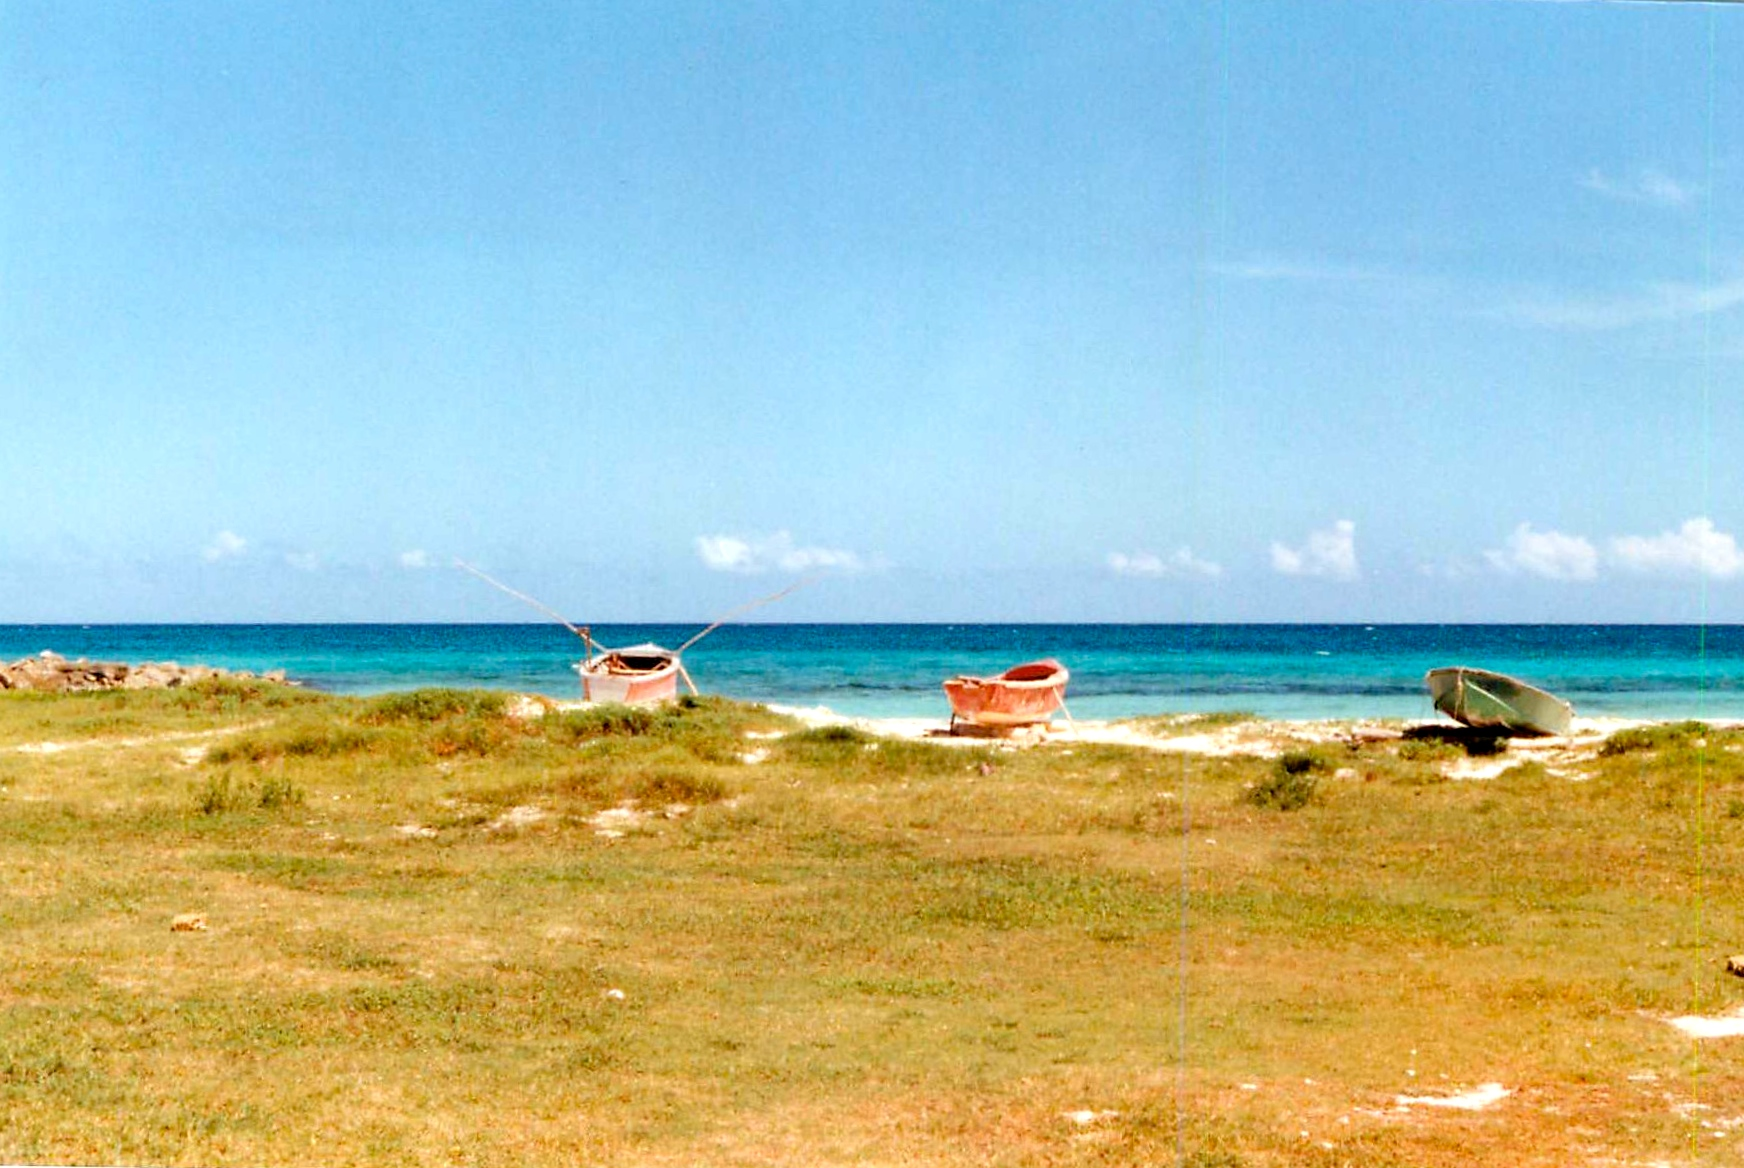 Boats on the Beach.jpg